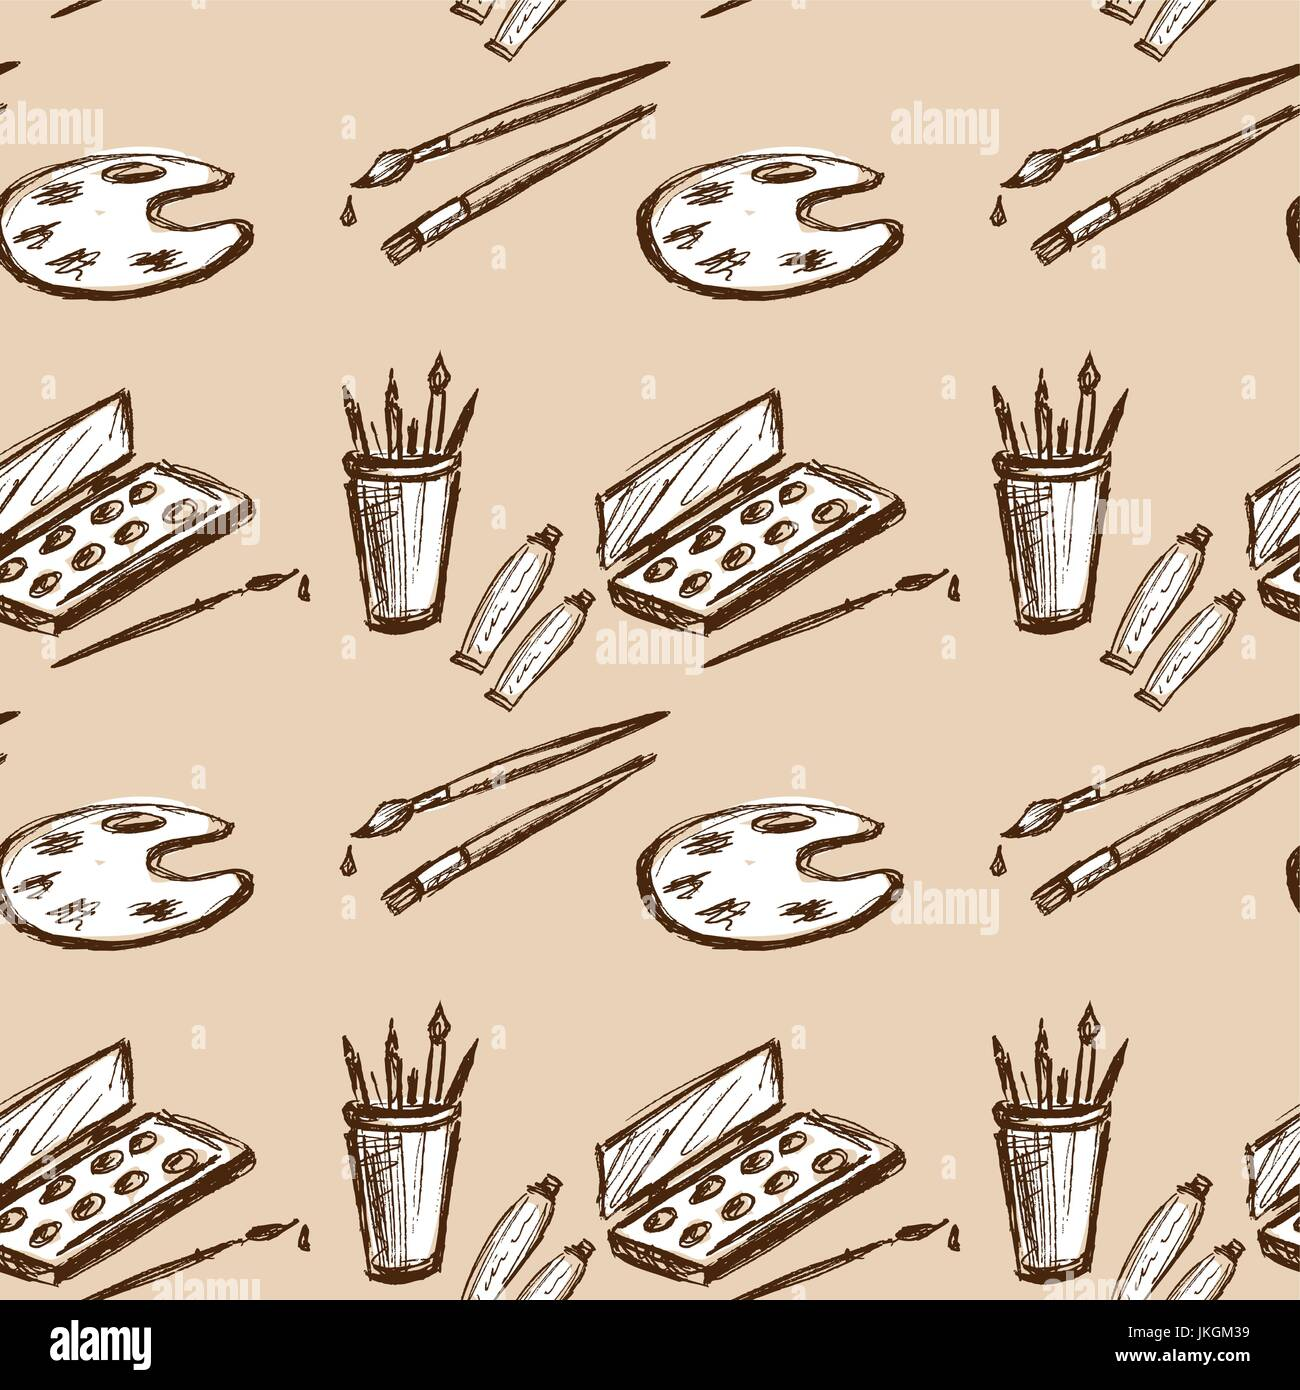 Seamless pattern art tools hand drawing seamless pattern can be used for wallpaper